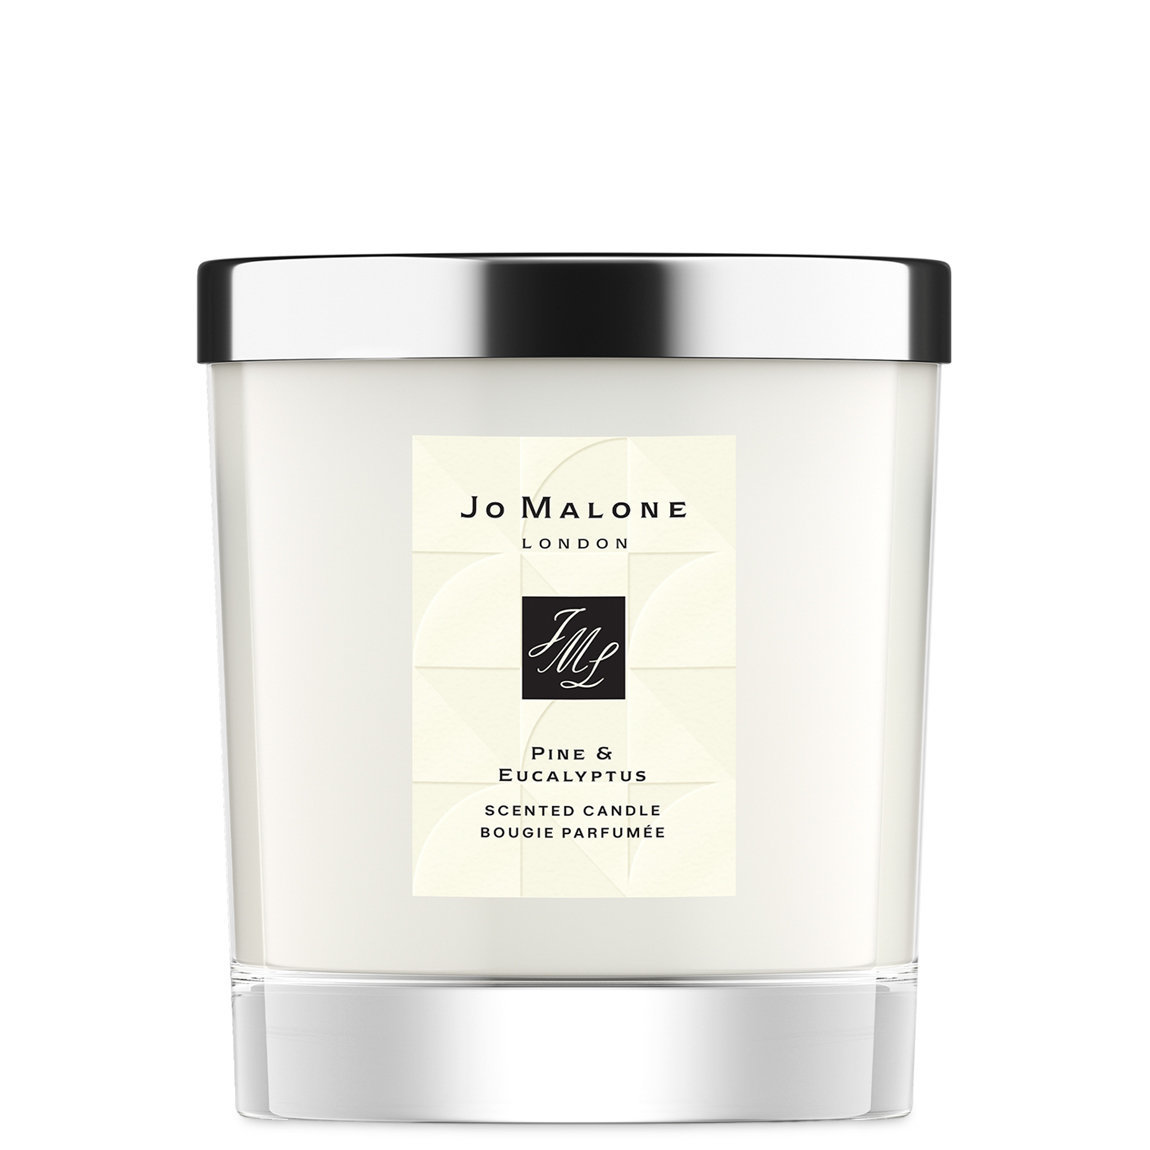 Jo Malone London Pine & Eucalyptus Home Candle alternative view 1.